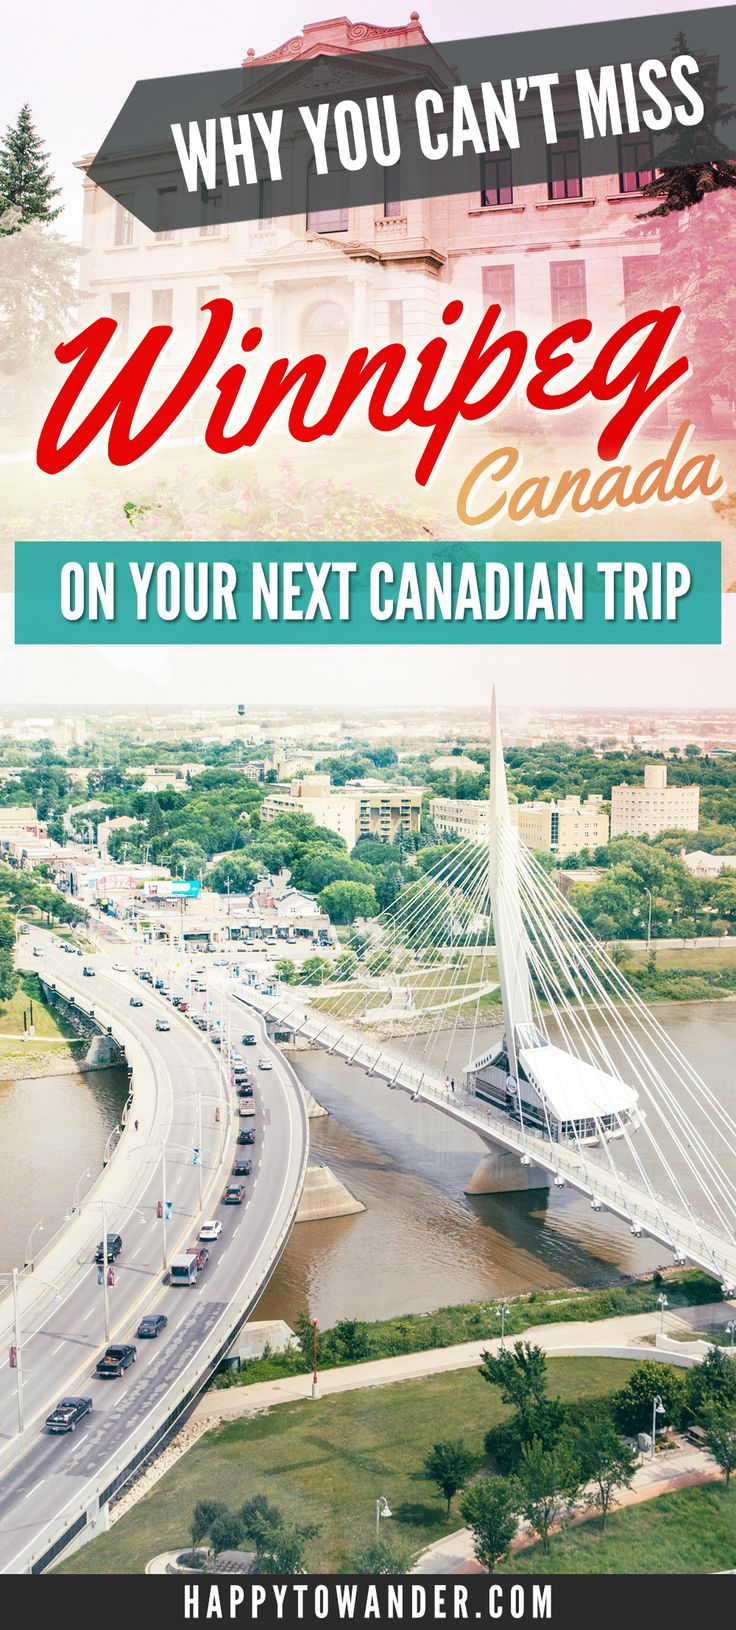 Winnipeg, Manitoba is one of Canada's most underrated city! Here's why it makes the perfect city break, featuring inspiration for things to do in Winnipeg and popular sights to visit.